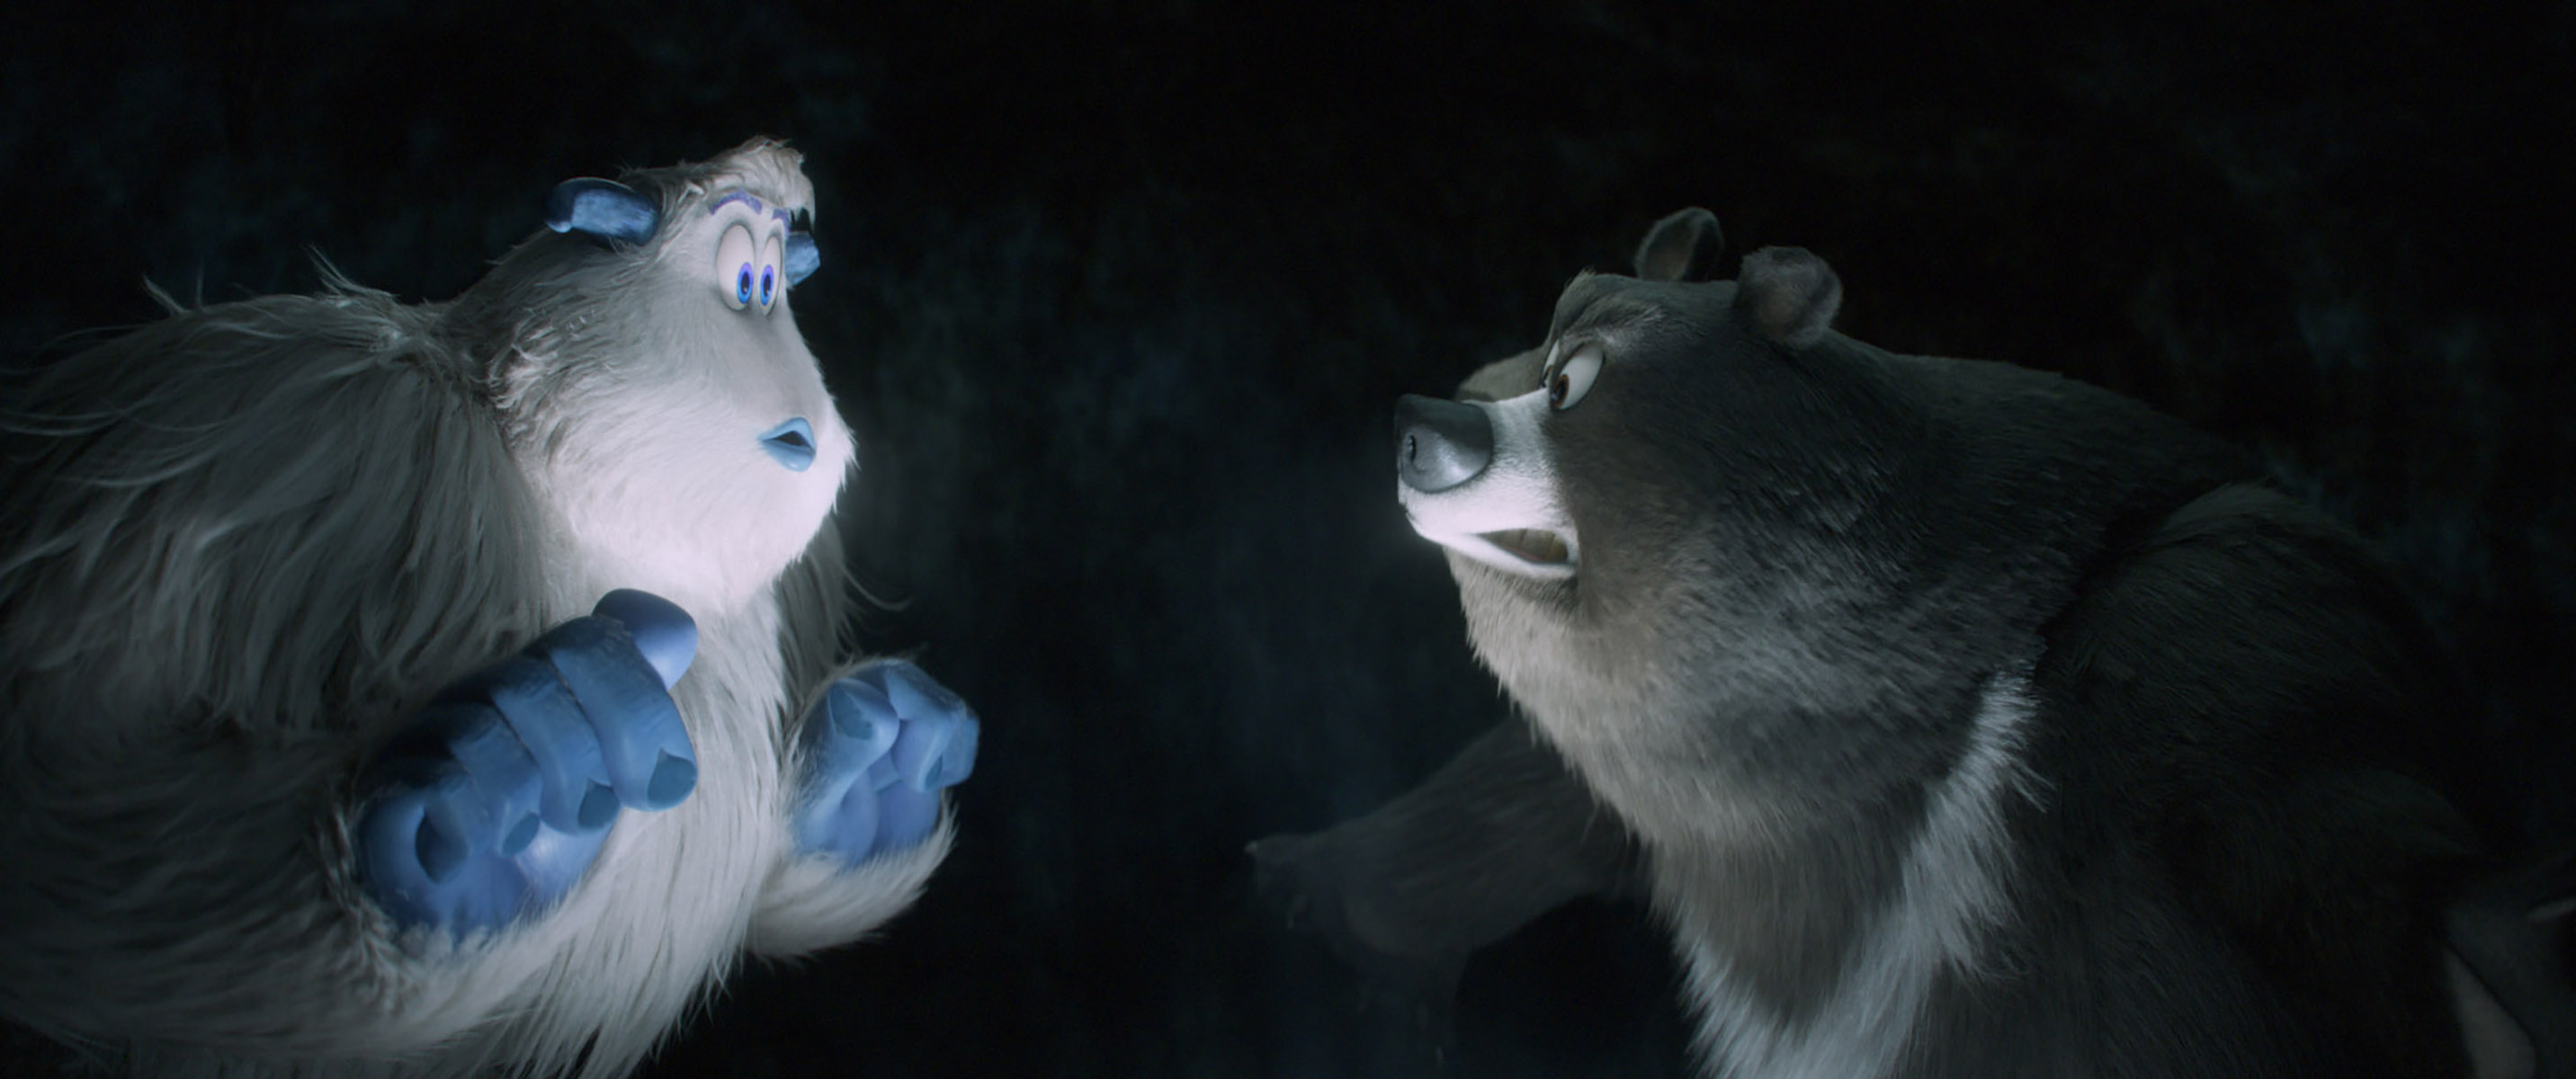 Smallfoot Gallery 23